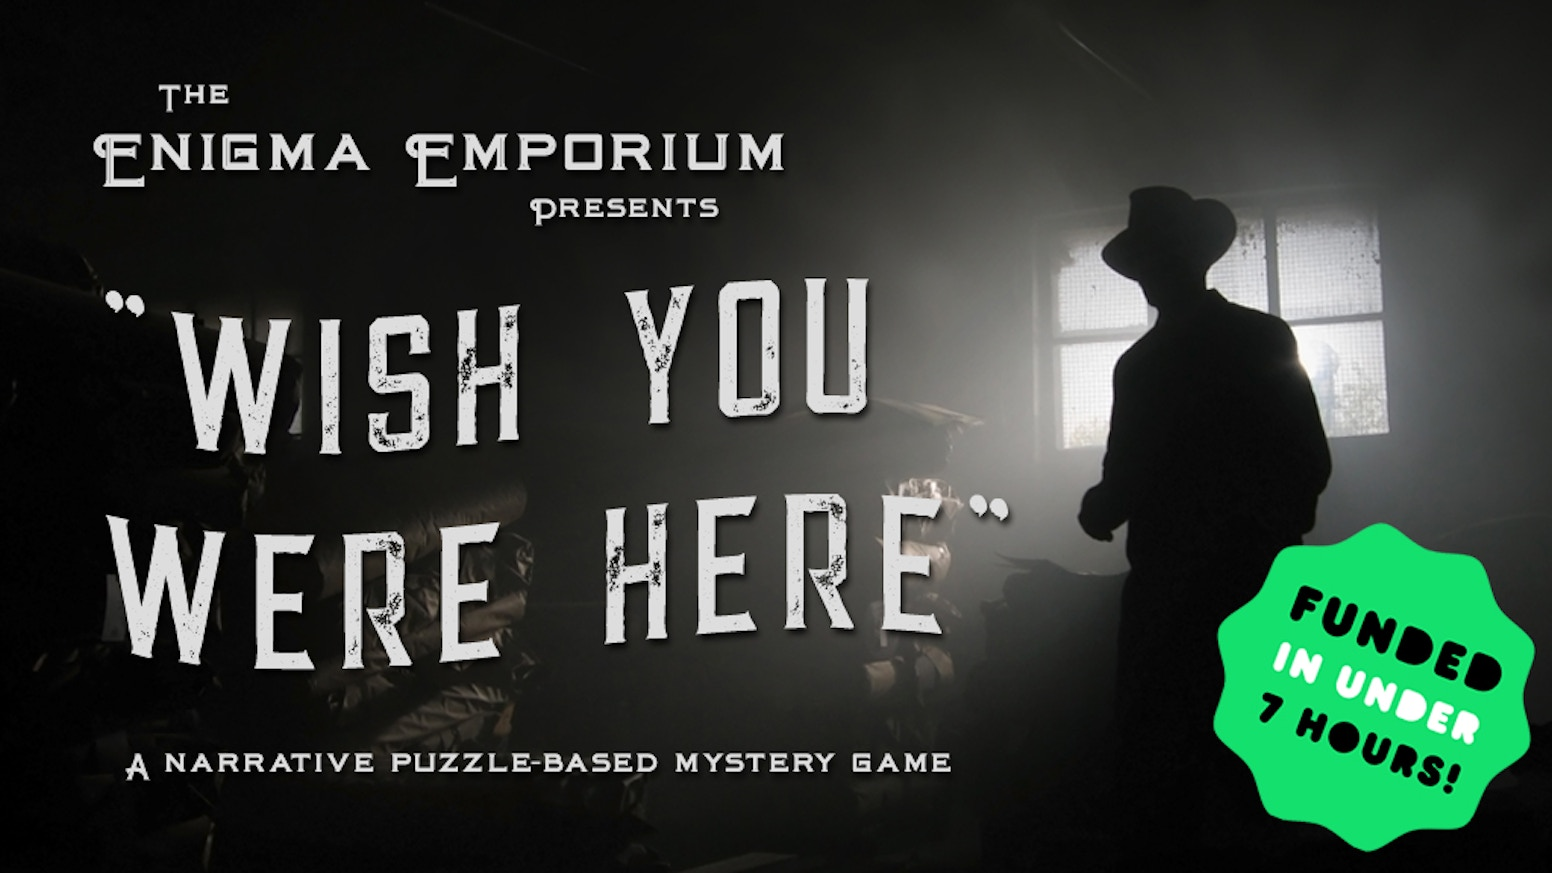 The Enigma Emporium Presents Wish You Were Here By The Enigma